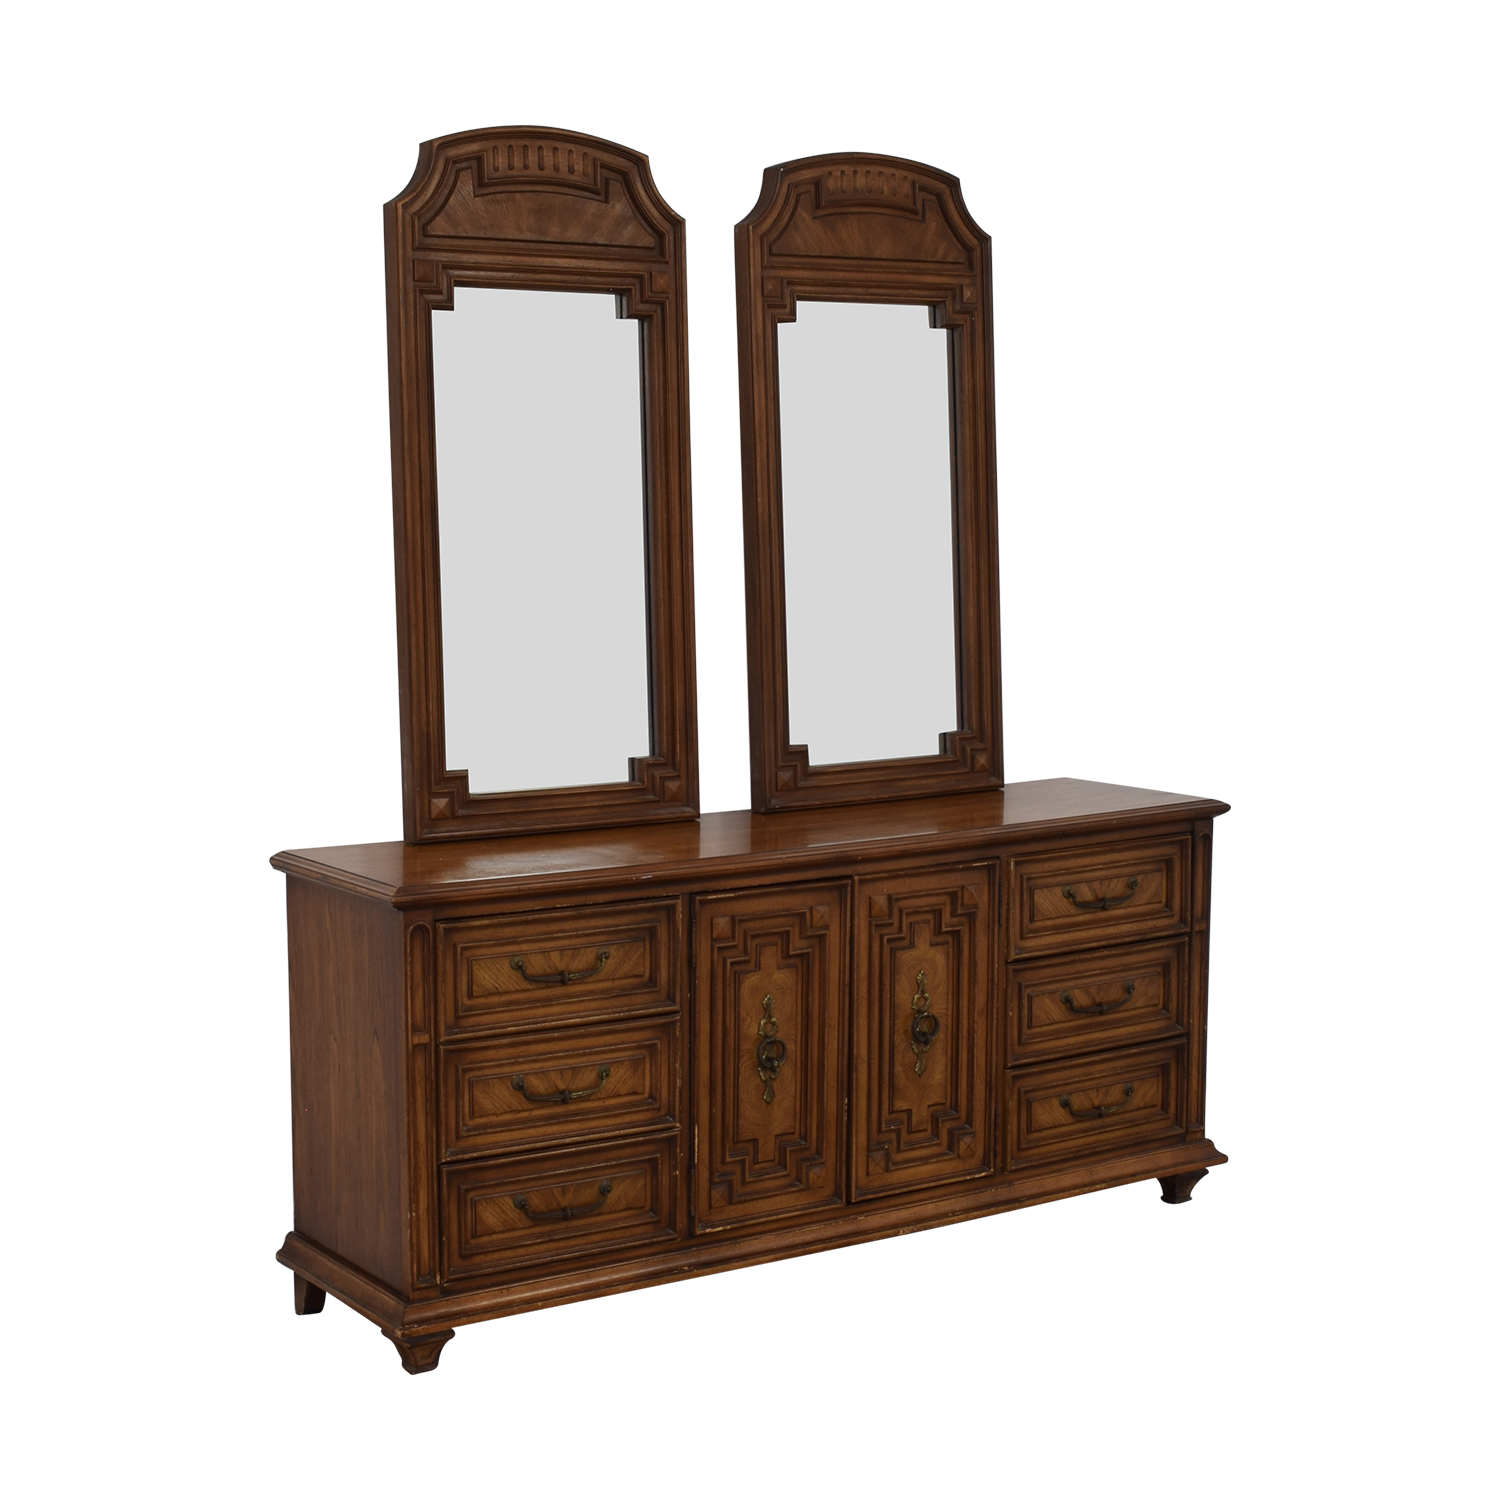 Vintage Dresser with Two Mirrors used